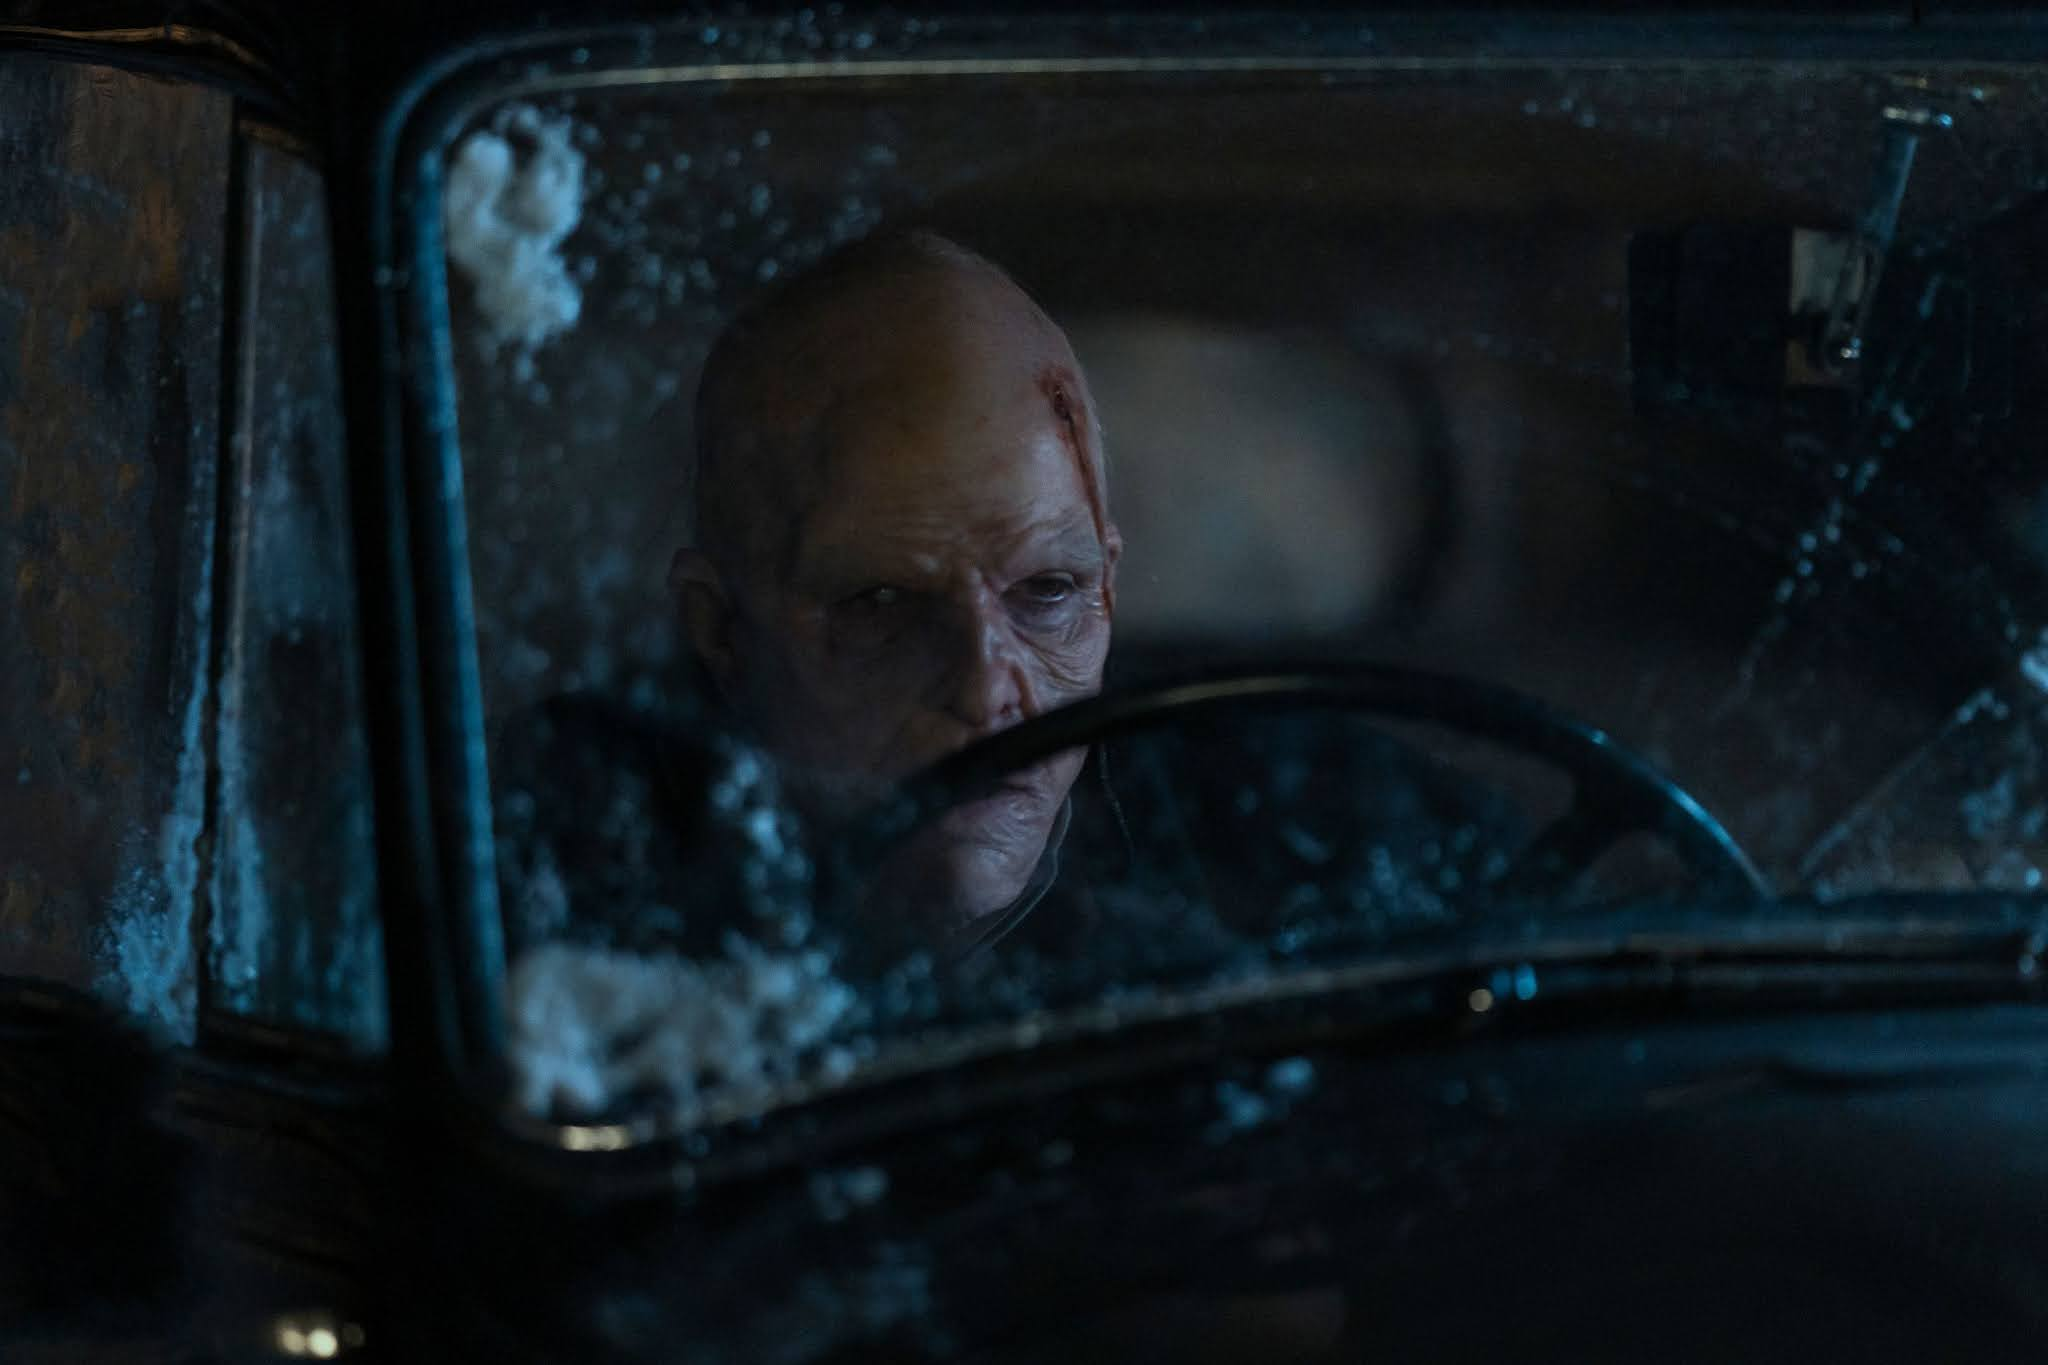 NOS4A2 - Bats - Zachary Quinto is Charlie Manx